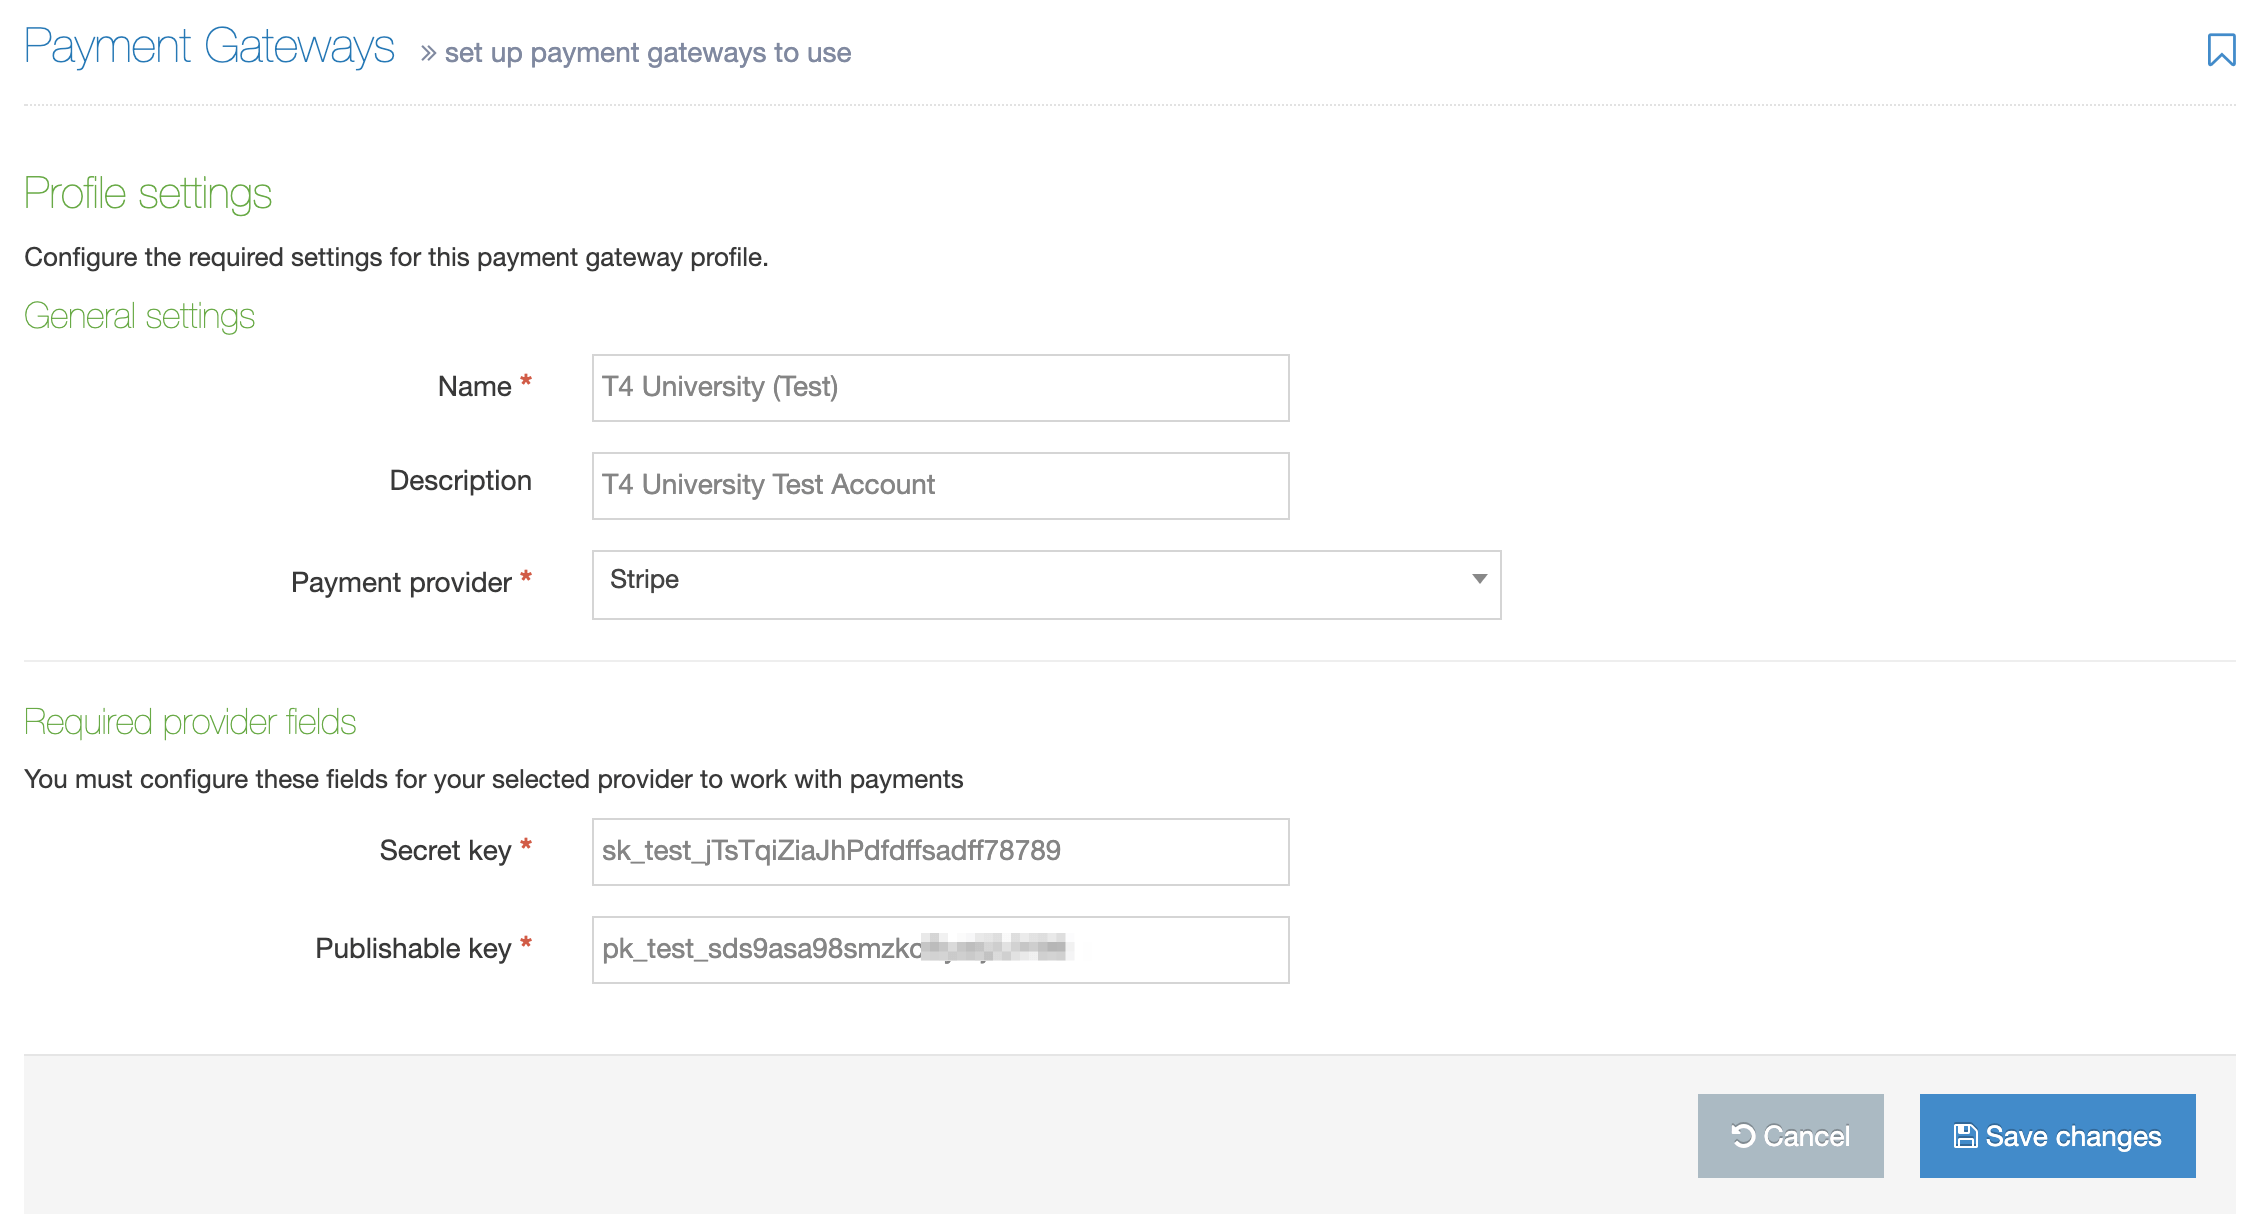 Screenshot of the Payment Gateway Settings screen